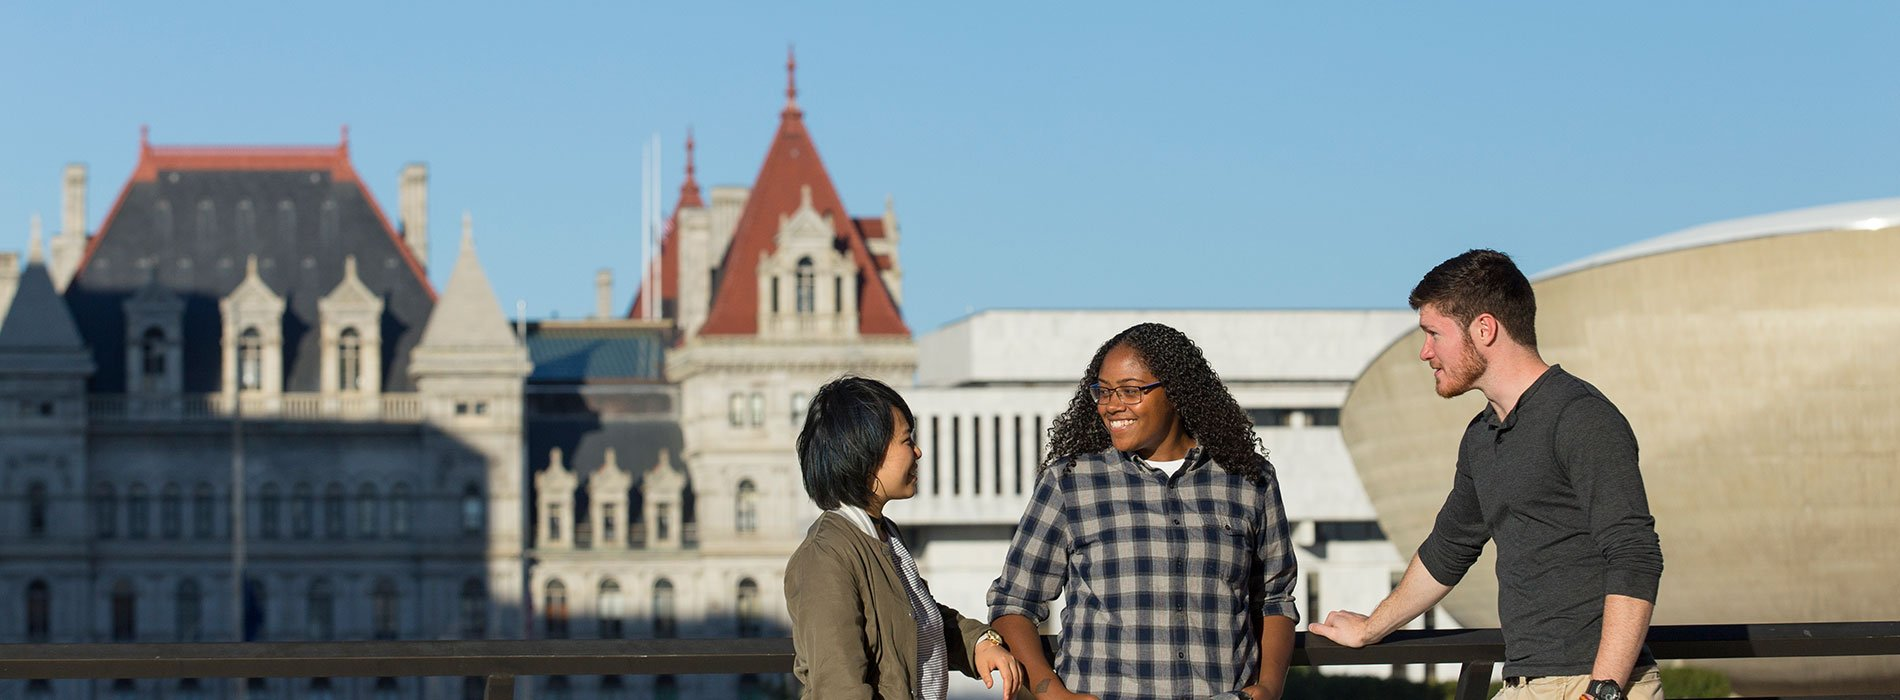 Students visit Empire State Plaza in Downtown Albany